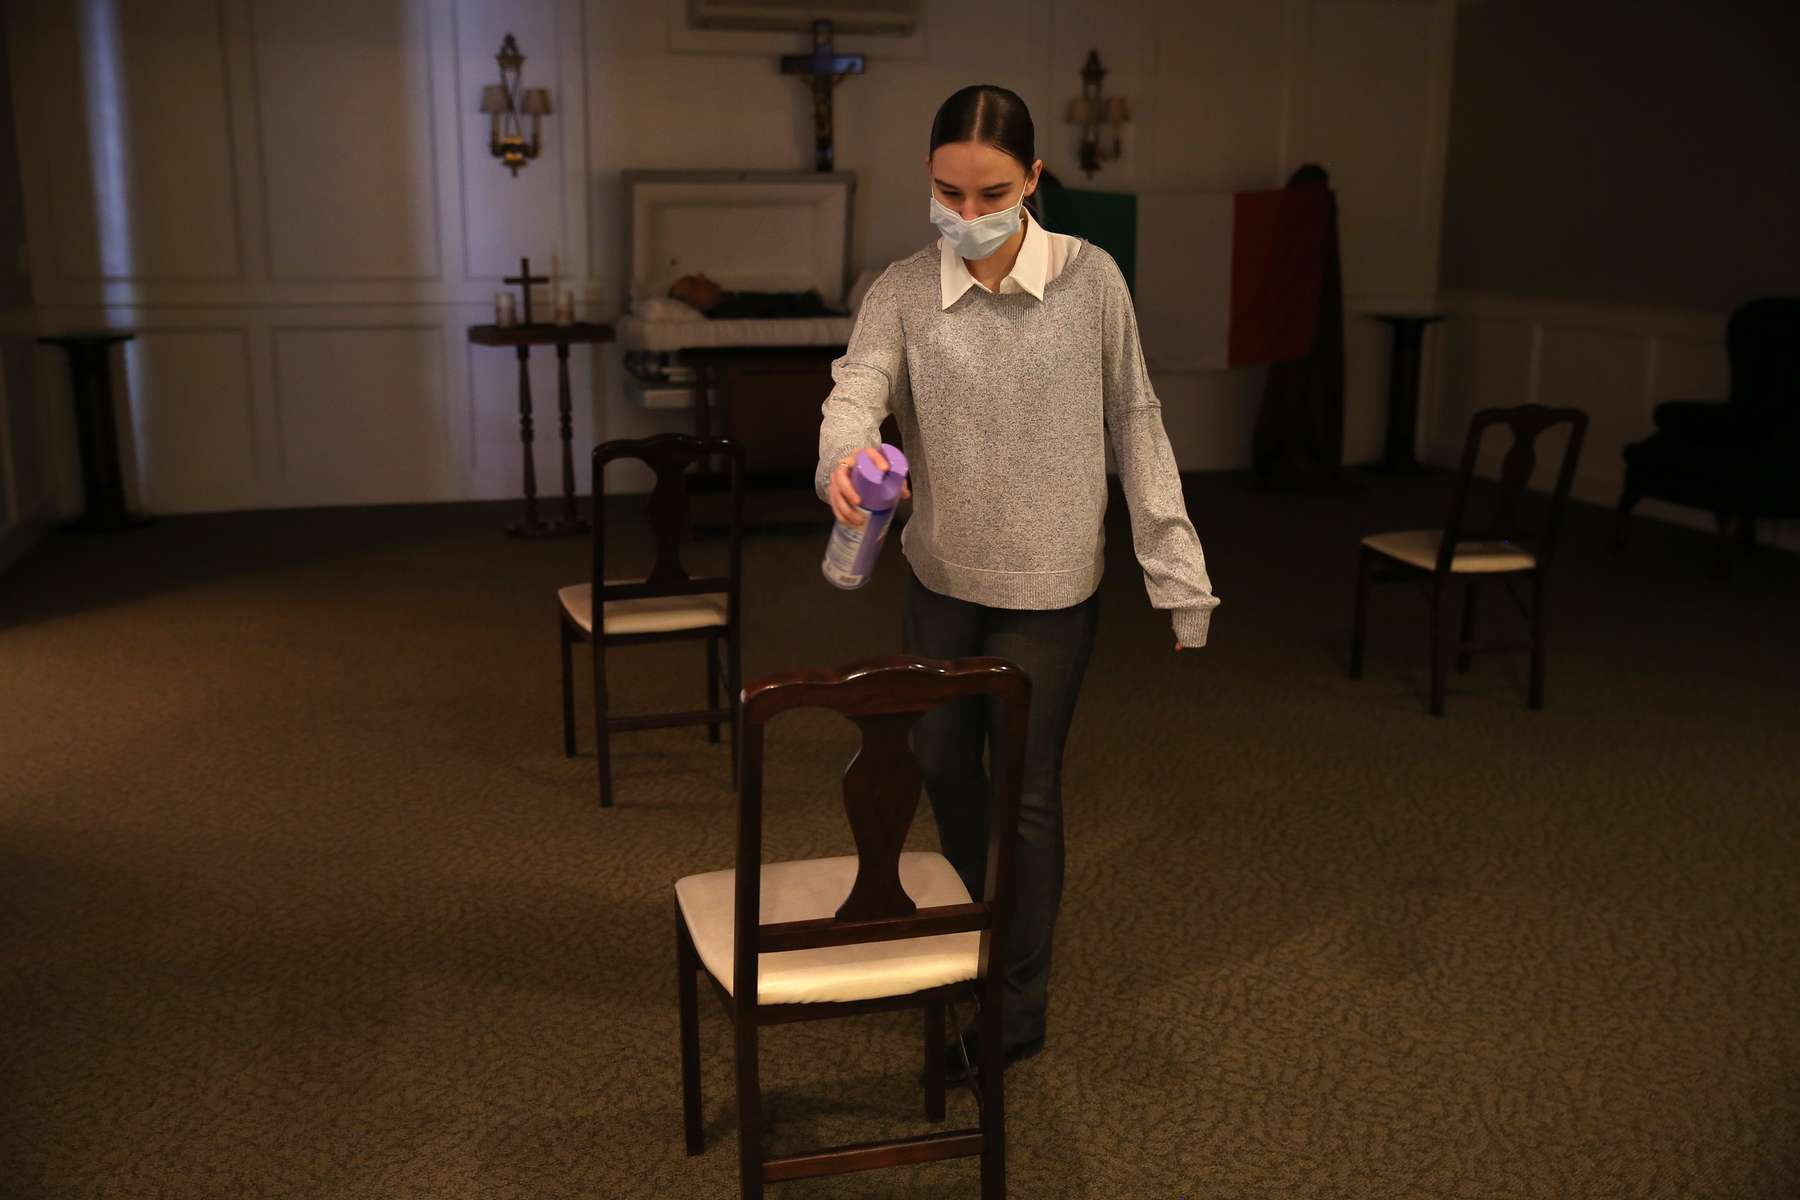 East Boston, MA - 4/29/20 - Apprentice funeral director Catie Ruggiero, sprays each chair down with lysol following a wake at Ruggiero Family Memorial Home in East Boston as funeral homes cope with a coronavirus or COVID-19 surge. (Jessica Rinaldi/Globe Staff)